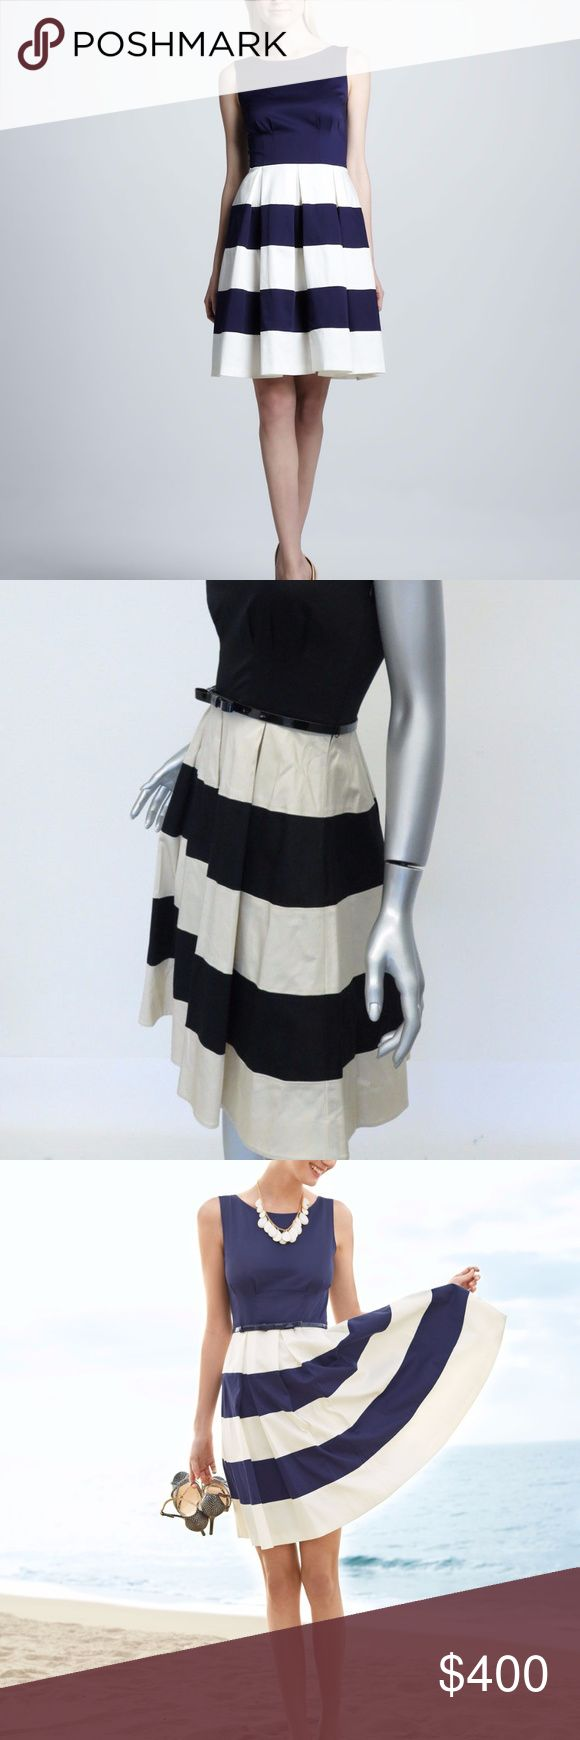 """kate spade new york celina stripe-skirt dress Brand new with tags from Nordstrom - http://www.neimanmarcus.com/kate-spade-new-york-celina-stripe-skirt-dress-french-navy/prod155210069/p.prod  kate spade new york dress does the pairing for you with a solid top and a flattering A-line skirt with bold stripes stripes and box pleats. Solid top with striped skirt. Bateau neckline with scoop back; sleeveless. Patent leather belt. Pleated, A-line skirt. Approx. 38""""L from shoulder to hem…"""